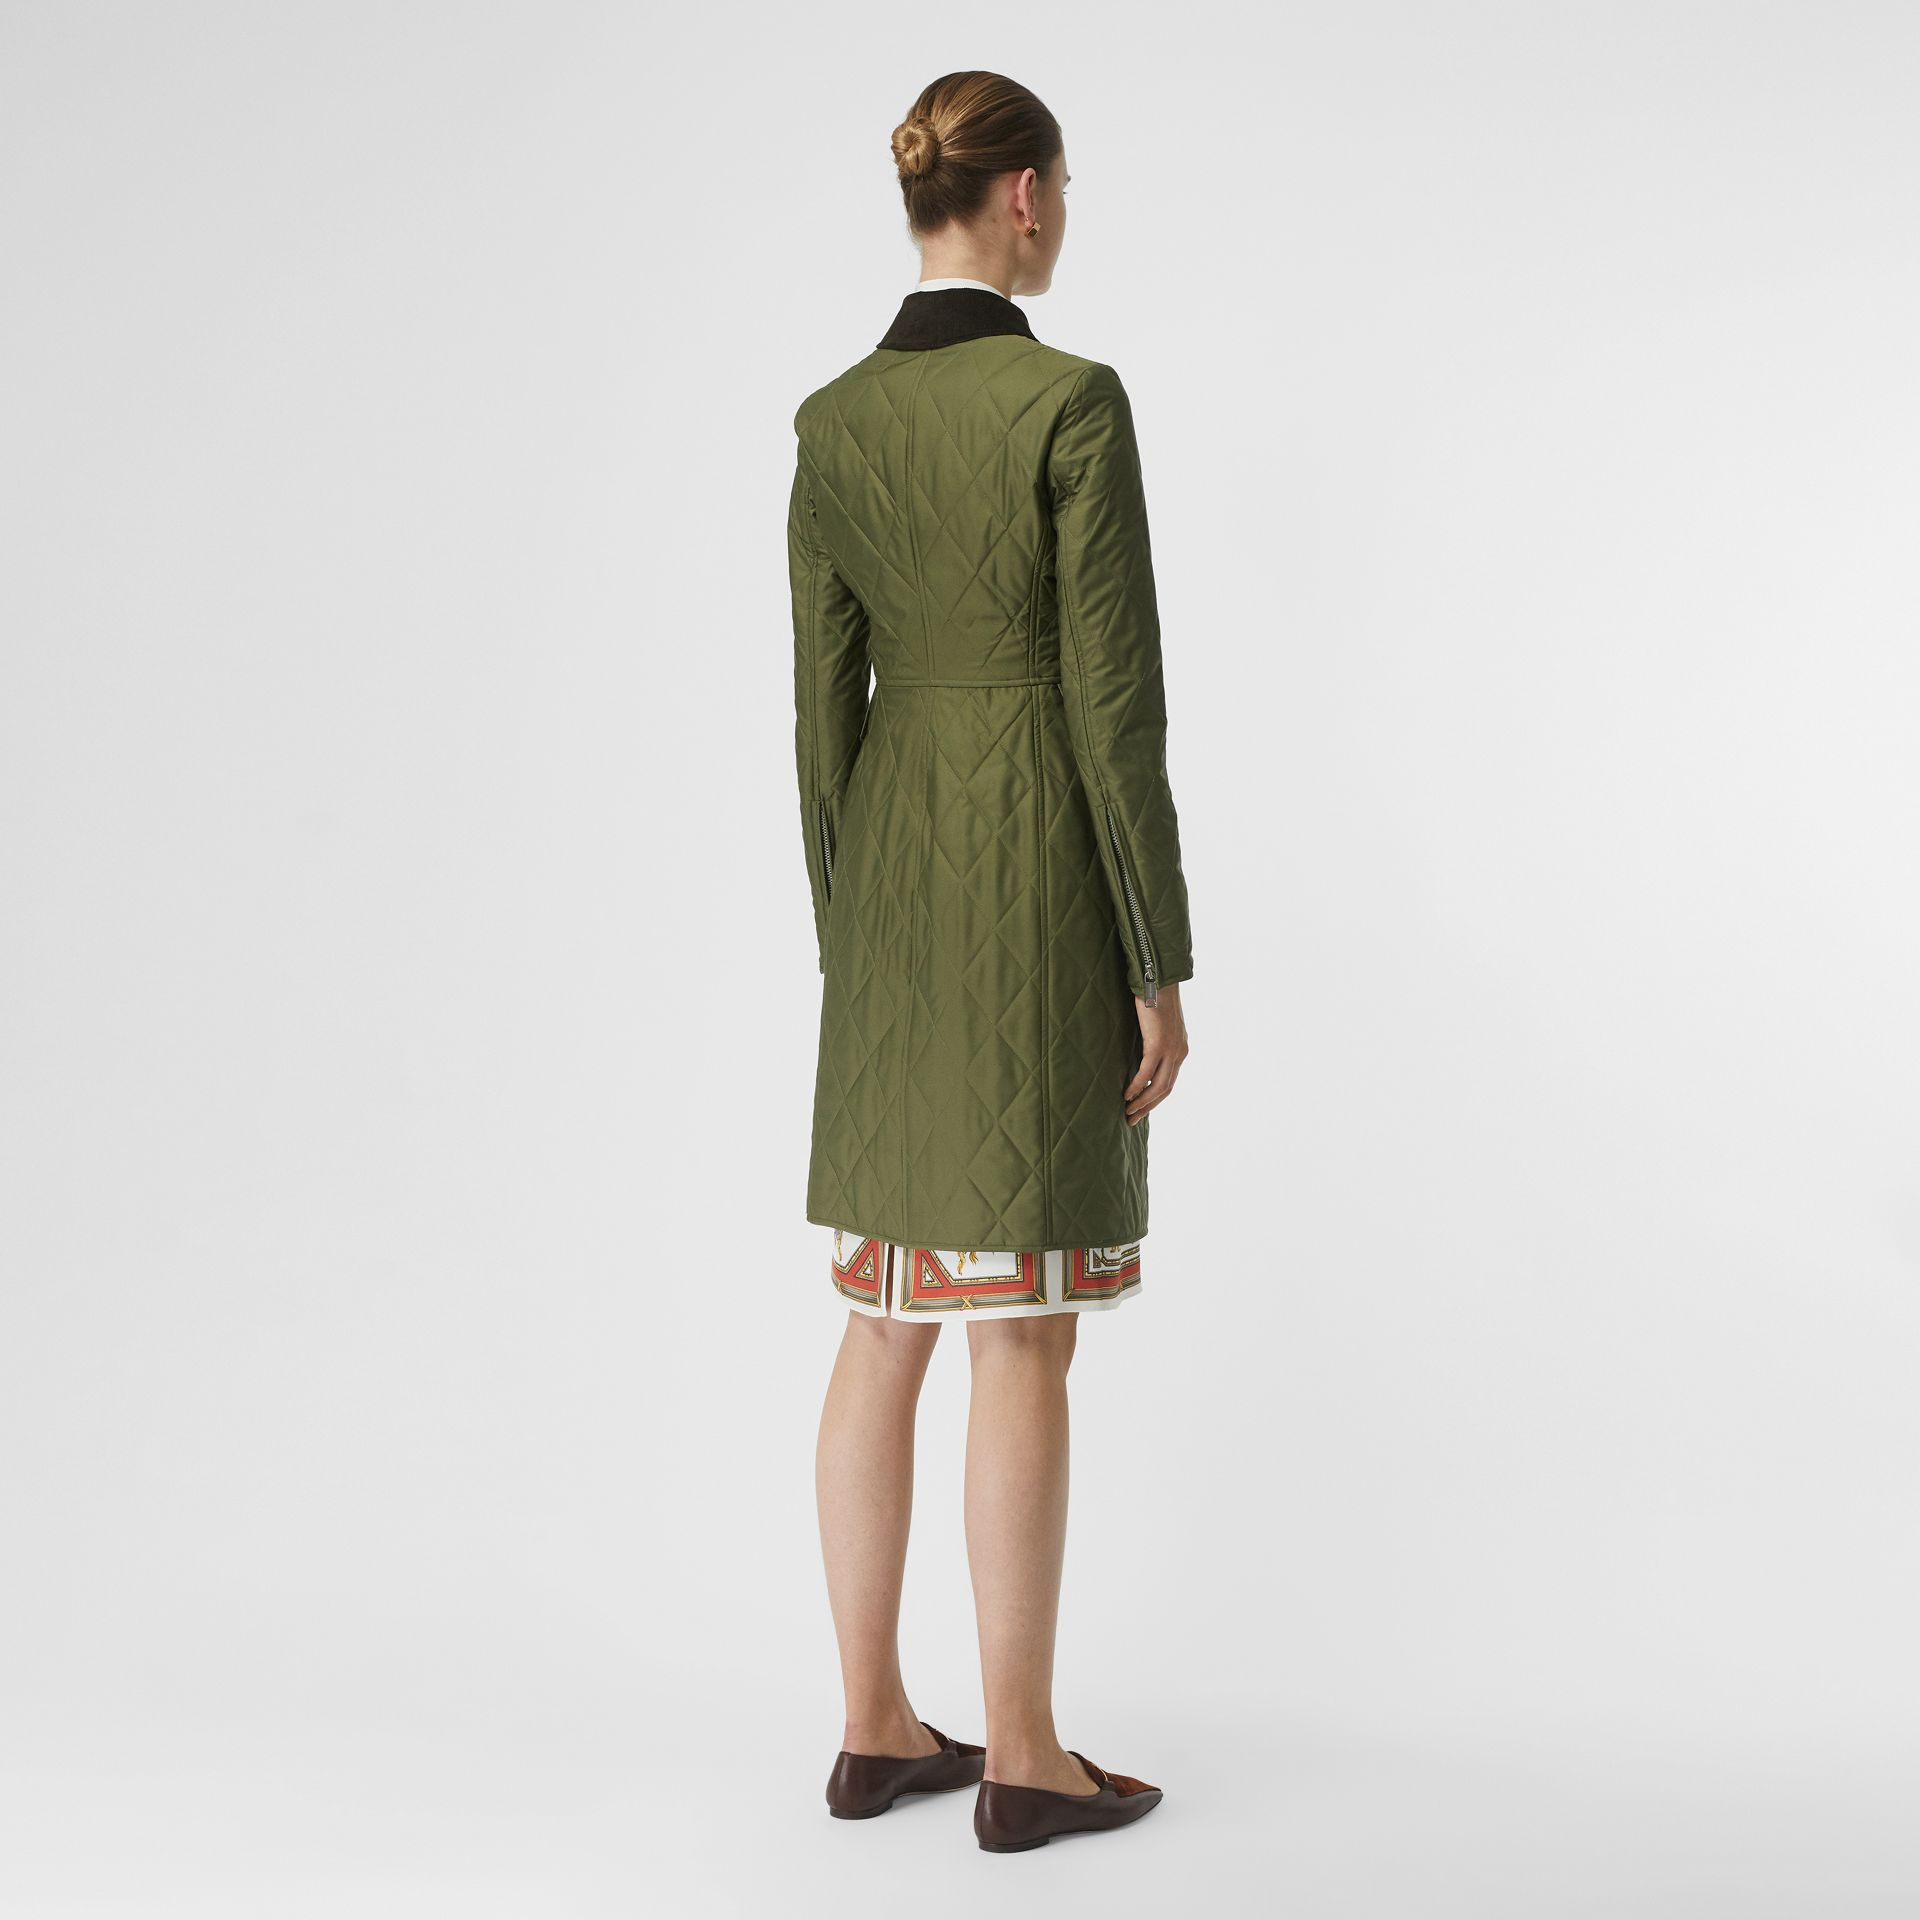 Monogram Motif Quilted Riding Coat in Utility Green - Women | Burberry - gallery image 2